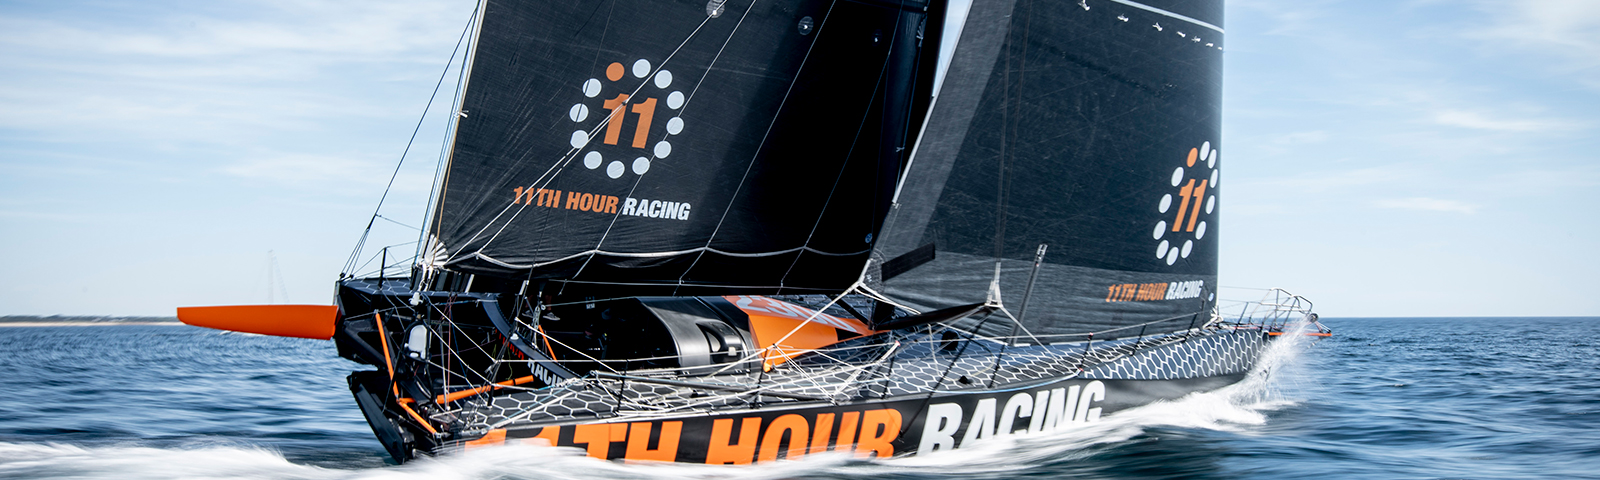 11th Hour Racing Team, Imcoa 60, Charlie Enright, Mark Towill,